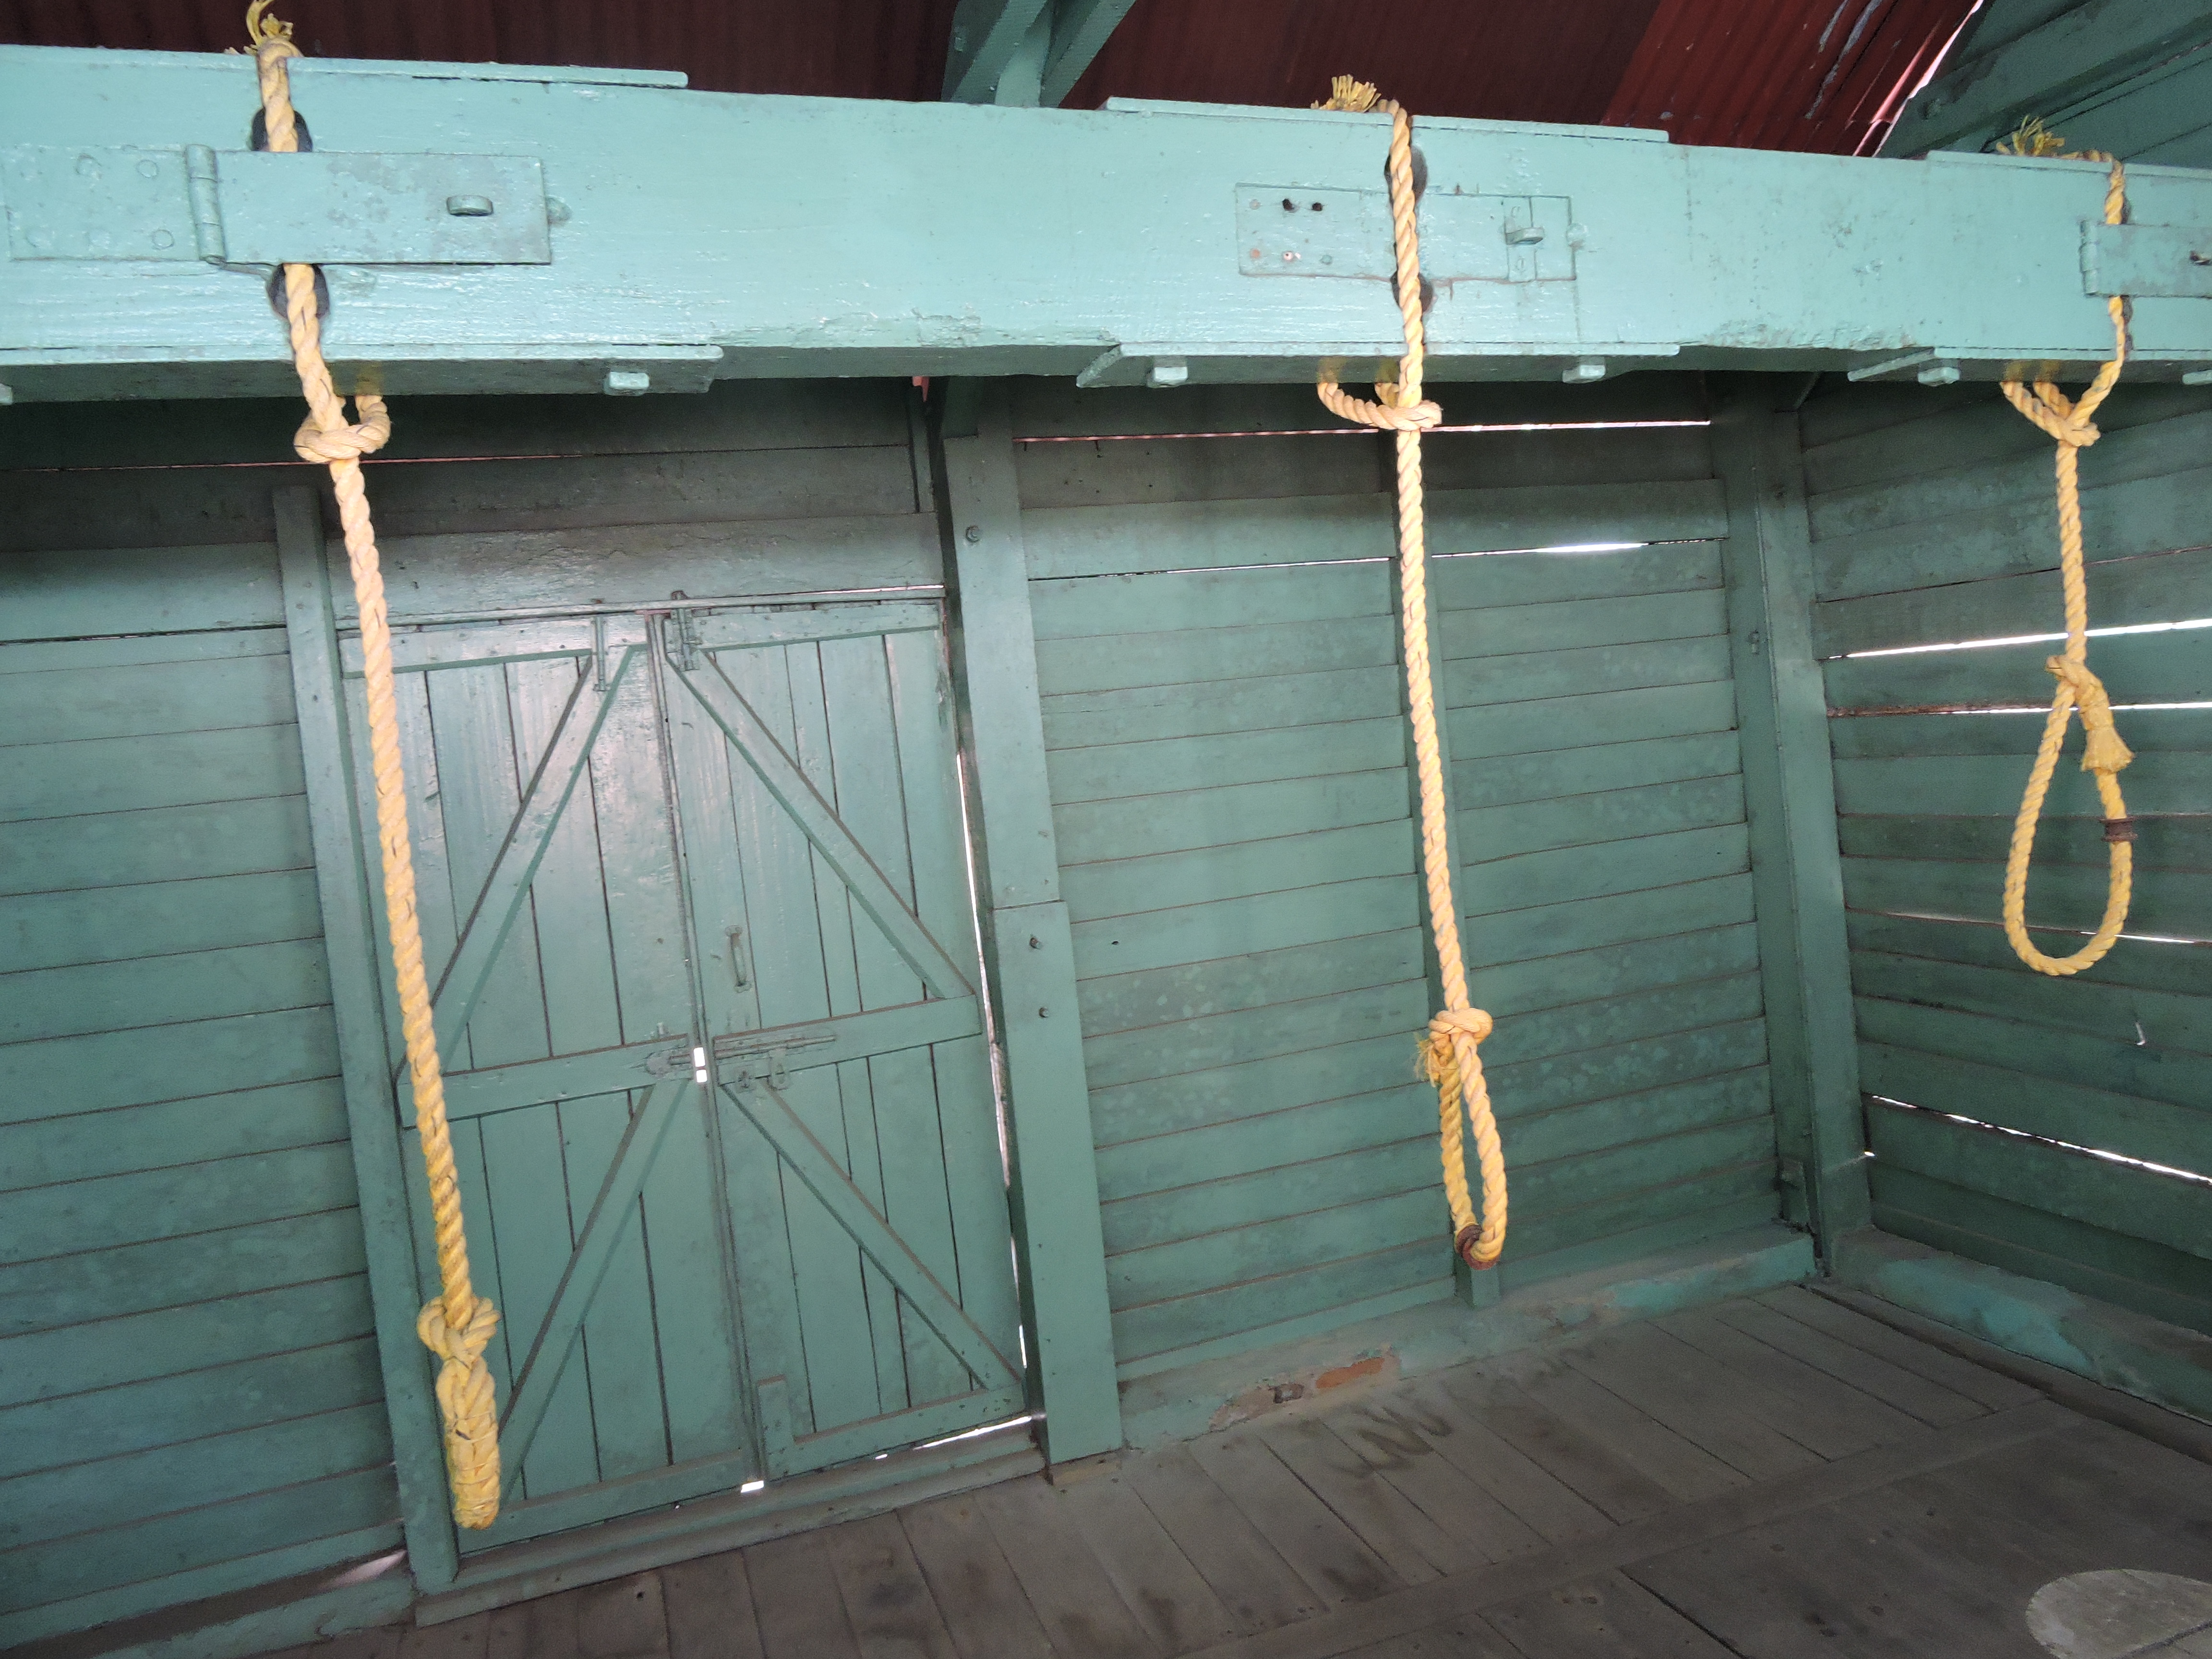 File:Cellular jail's hanging cell JPG - Wikipedia